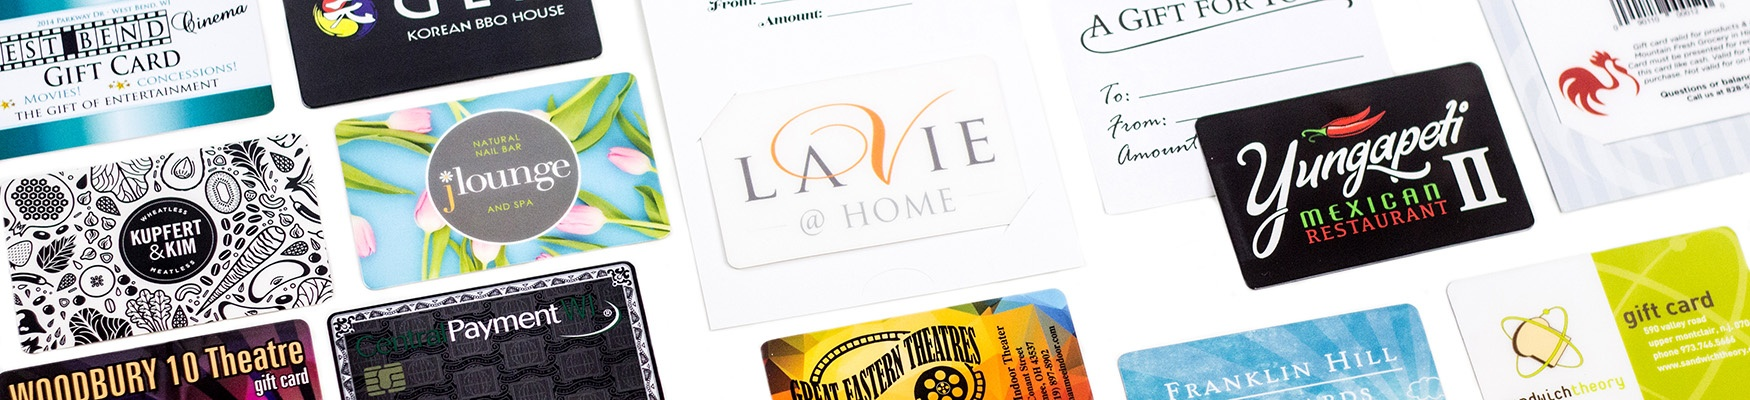 Gift-Card-Banner-Sample-6-1750x400-1.jpg